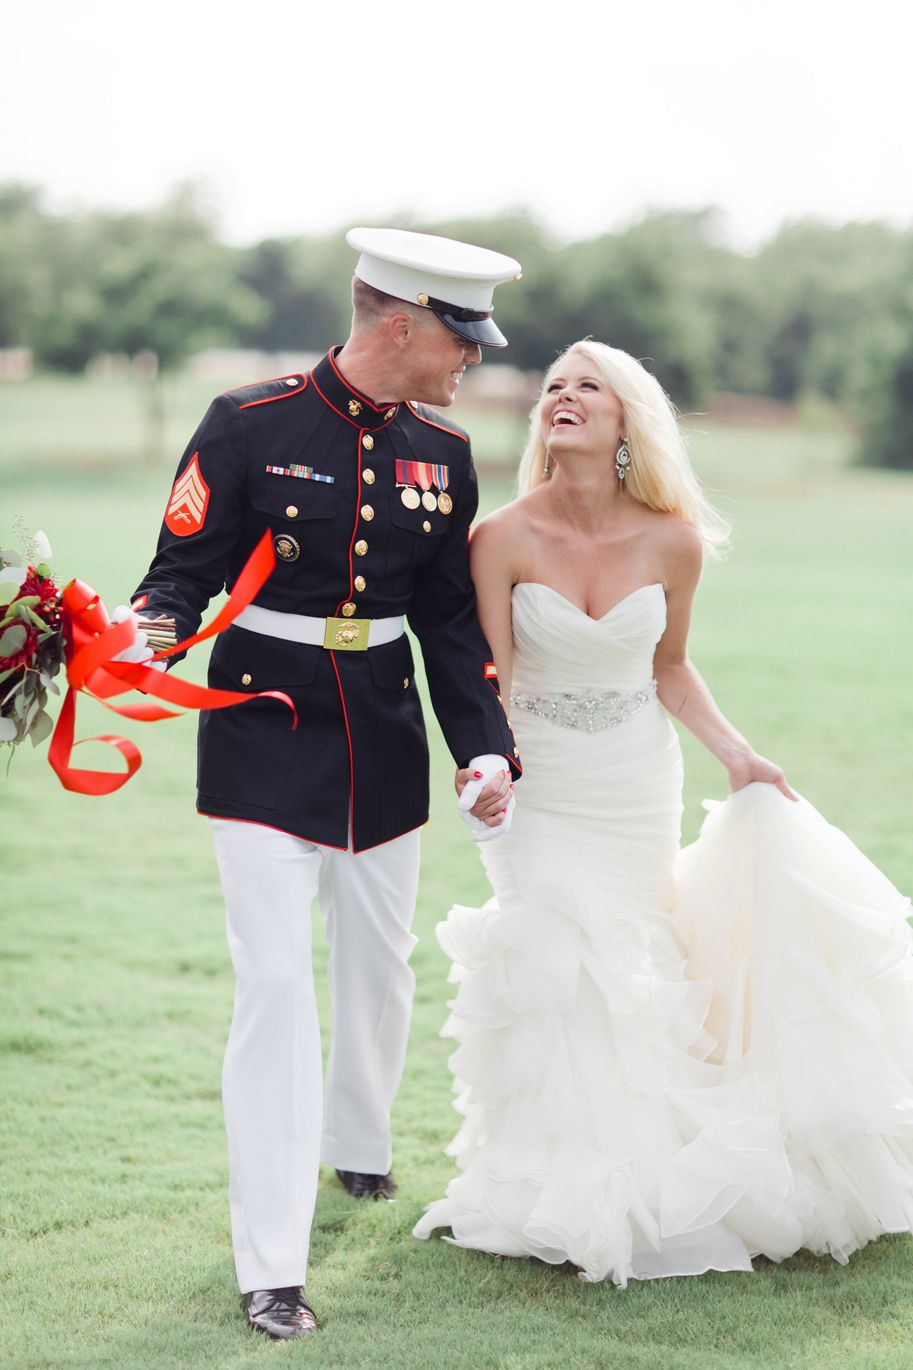 Cheap wedding dresses for military brides  Patriotic Wedding Military bride  Wedding Things  Pinterest